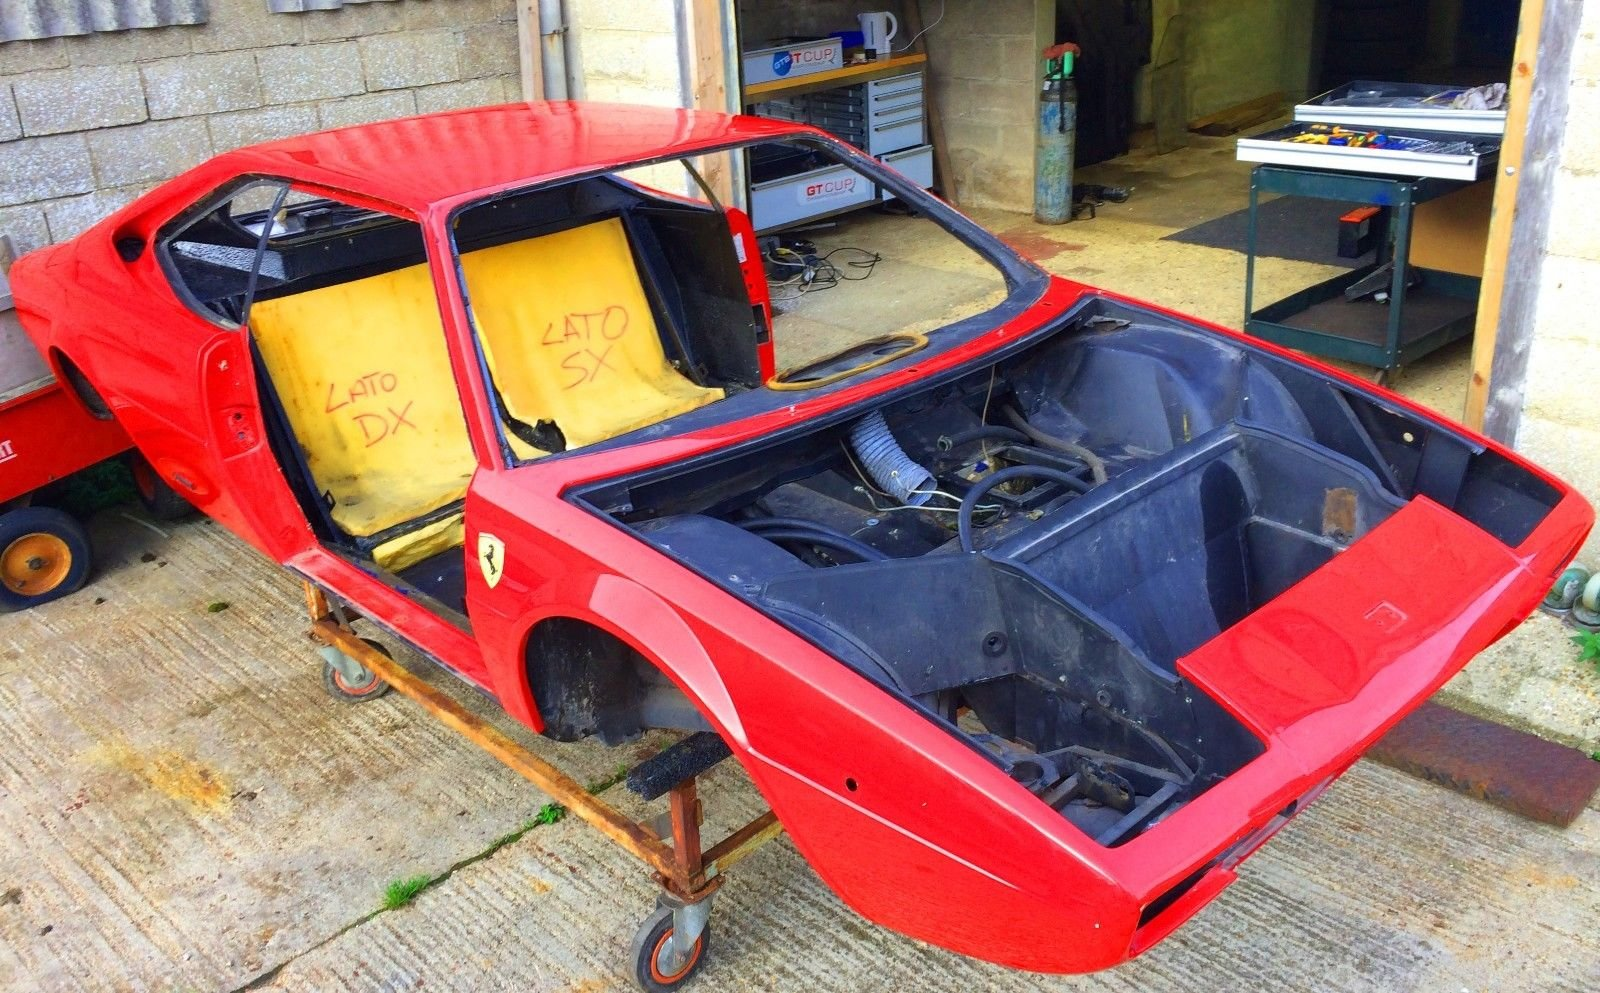 1975 Ferrari Dino 208 GT4 Body and Chassis LHD For Sale (picture 1 of 6)